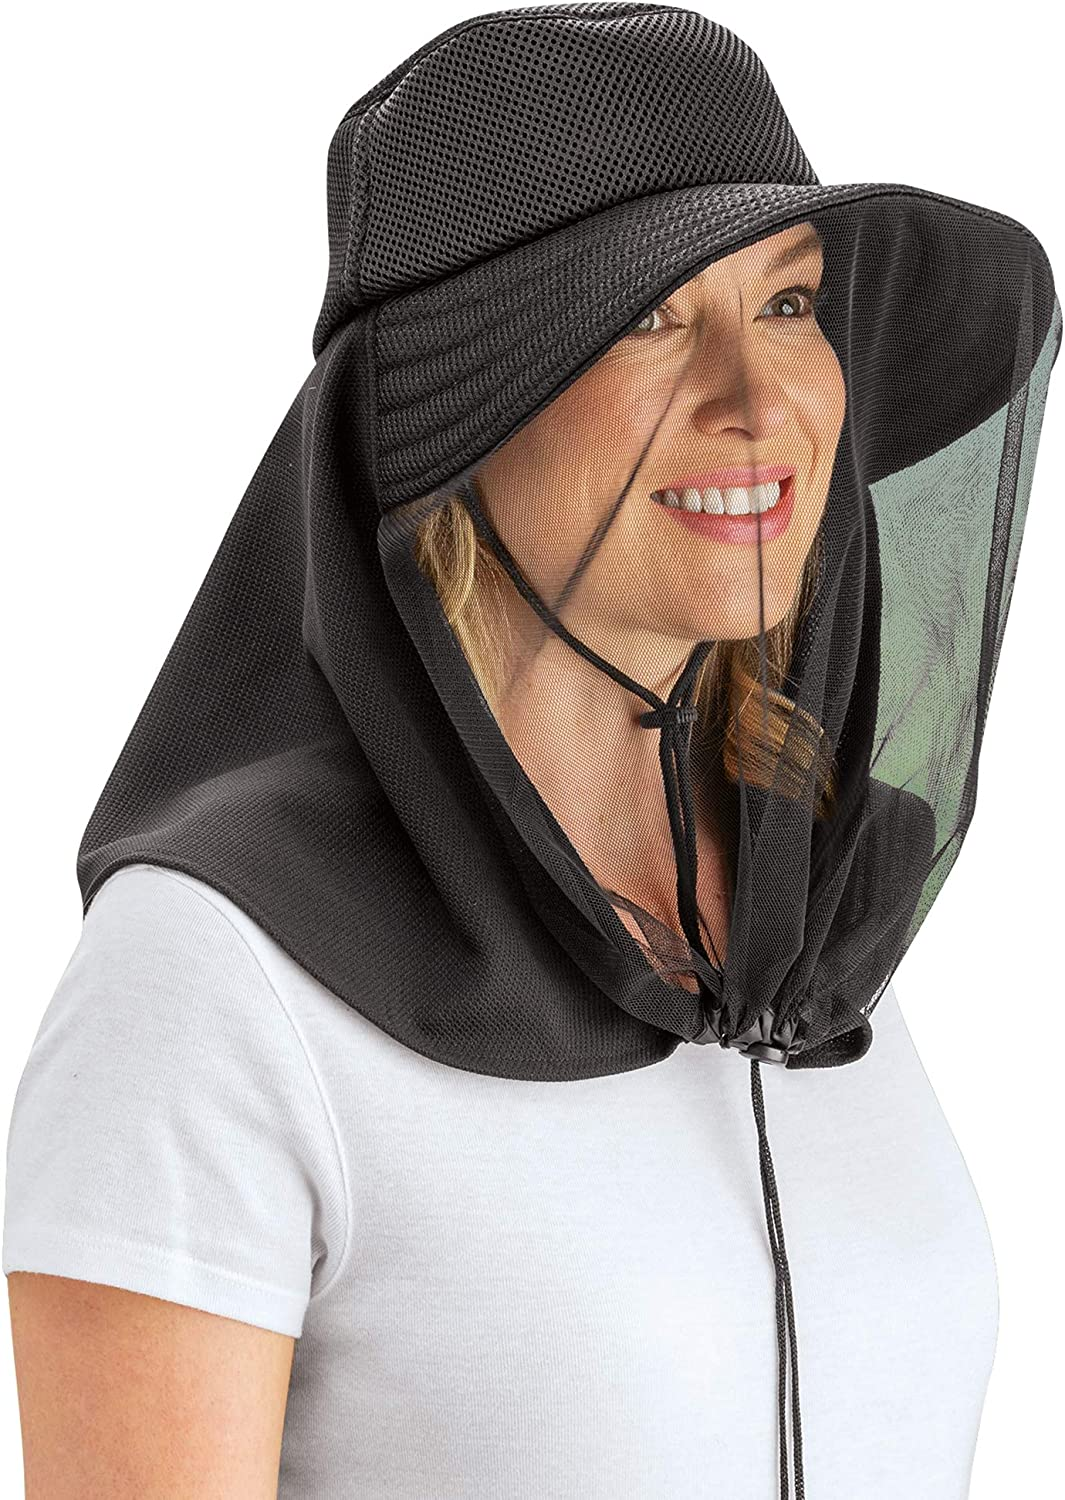 Protective Lightweight Black Mesh Mosquito Netting Hat - Wide Brim - Sun Protection - Hand Wash